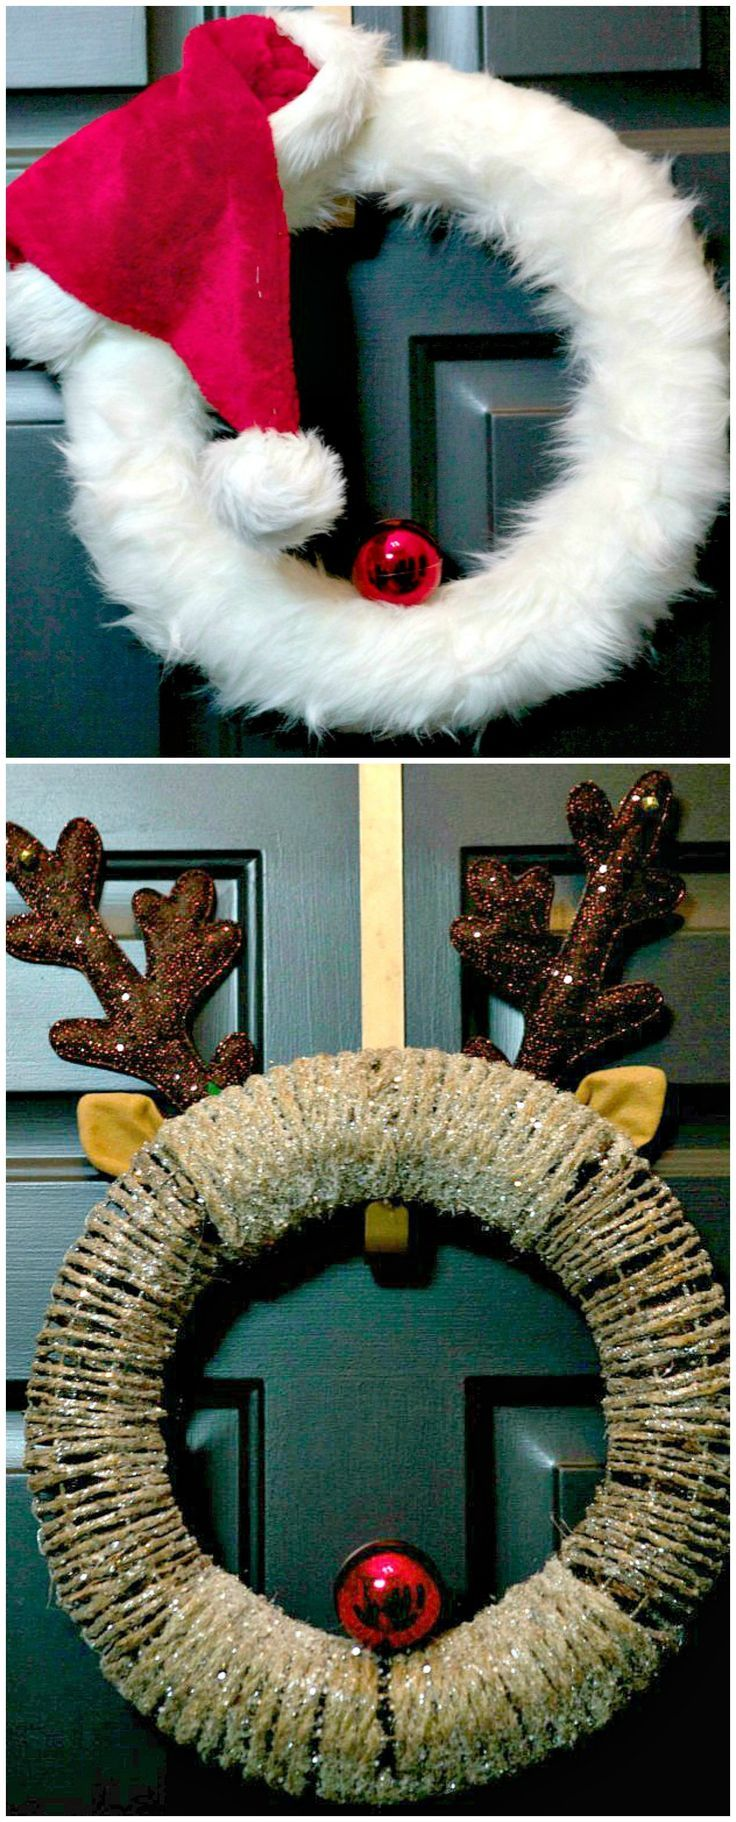 DIY Christmas Wreaths, This Is The Perfect DIY Craft For The Holidays Click Through For The Full Directions!